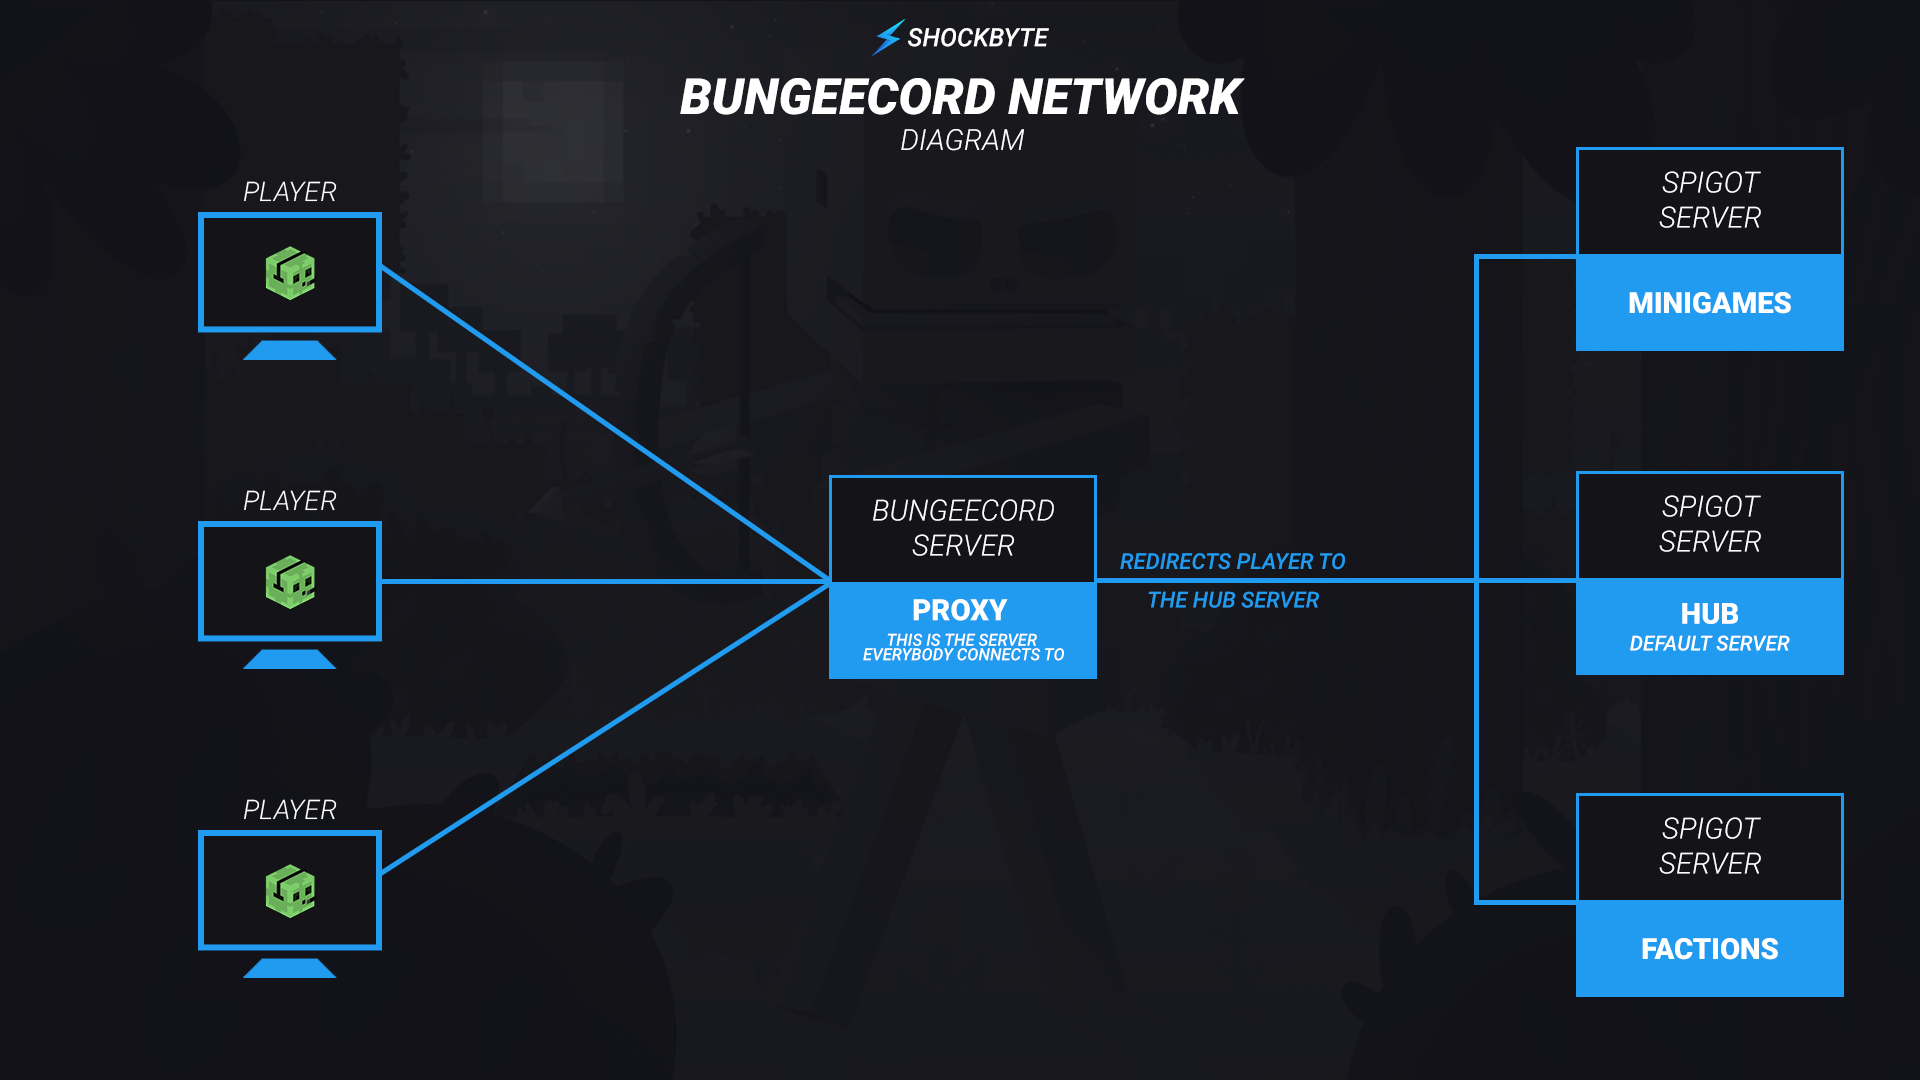 A diagram showing the server structure of a BungeeCord network.